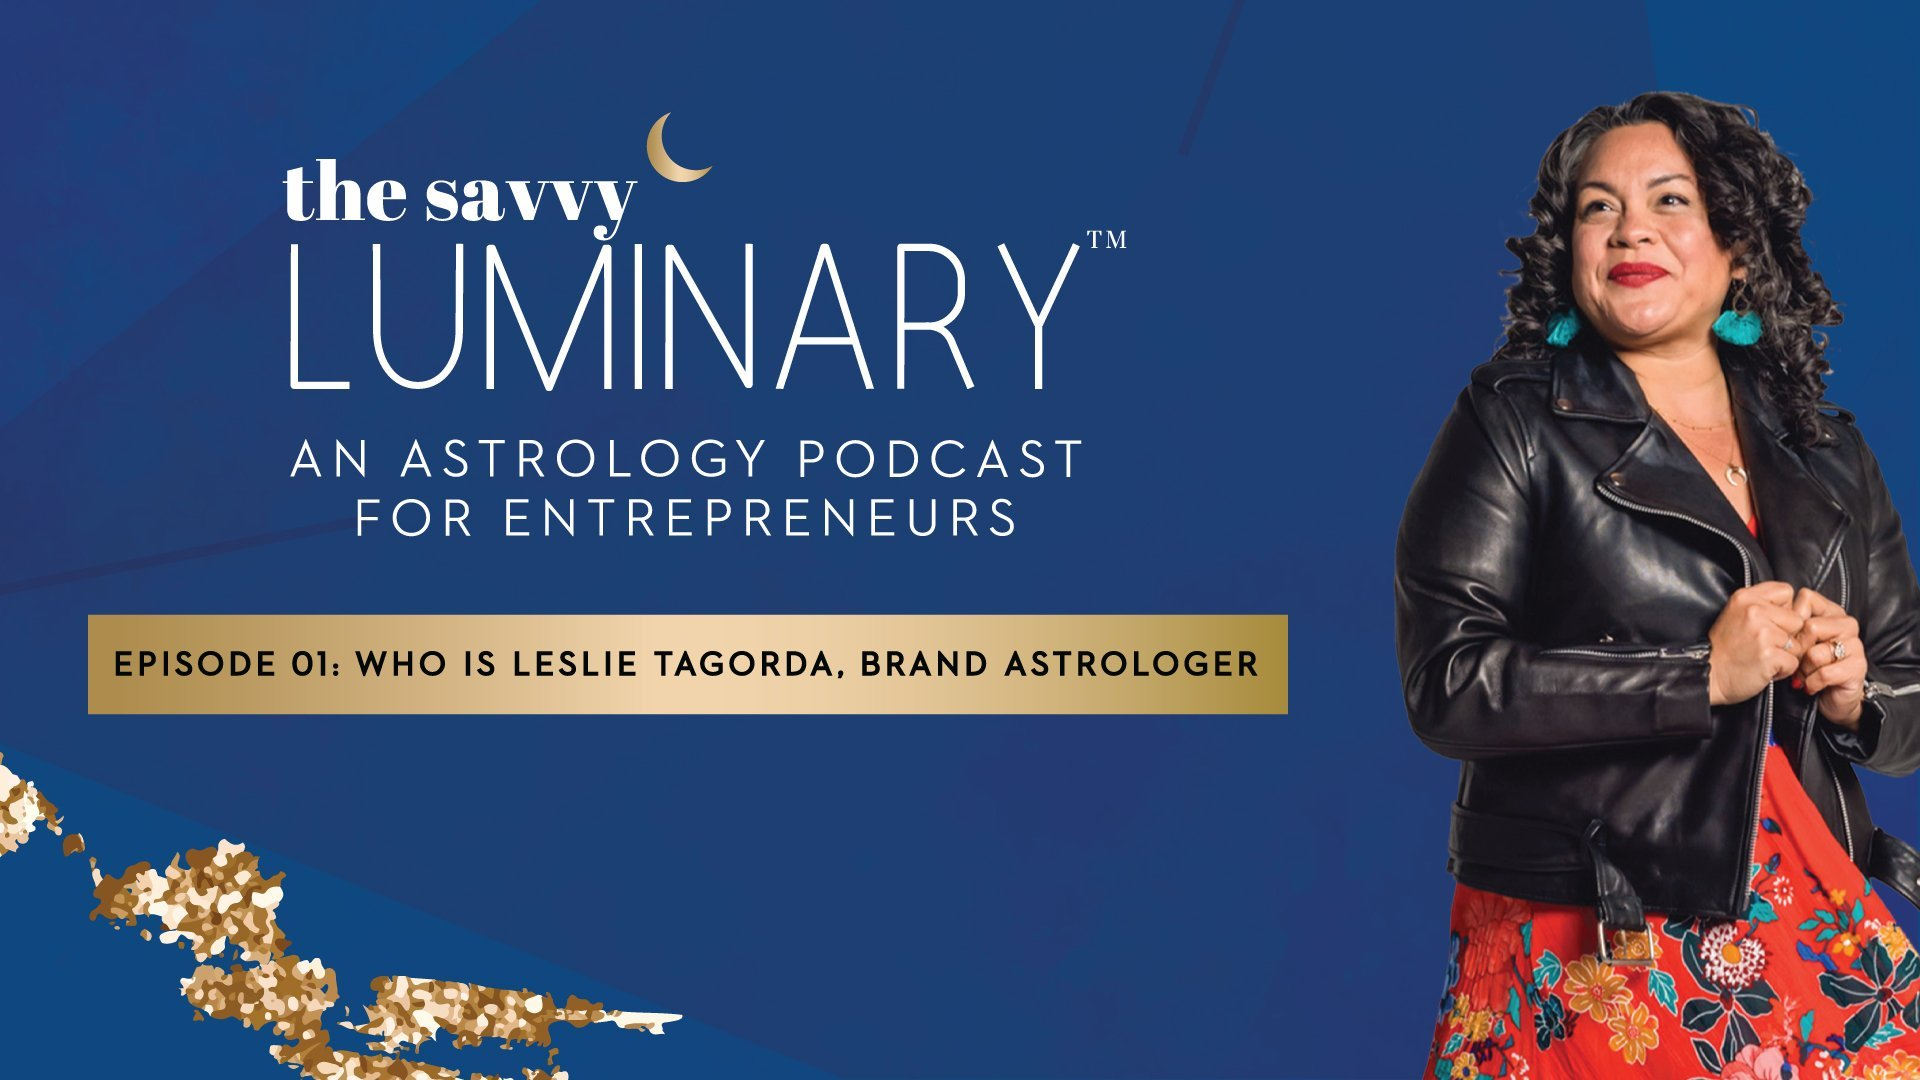 Episode 01: Who is Leslie Tagorda, Brand Astrologer